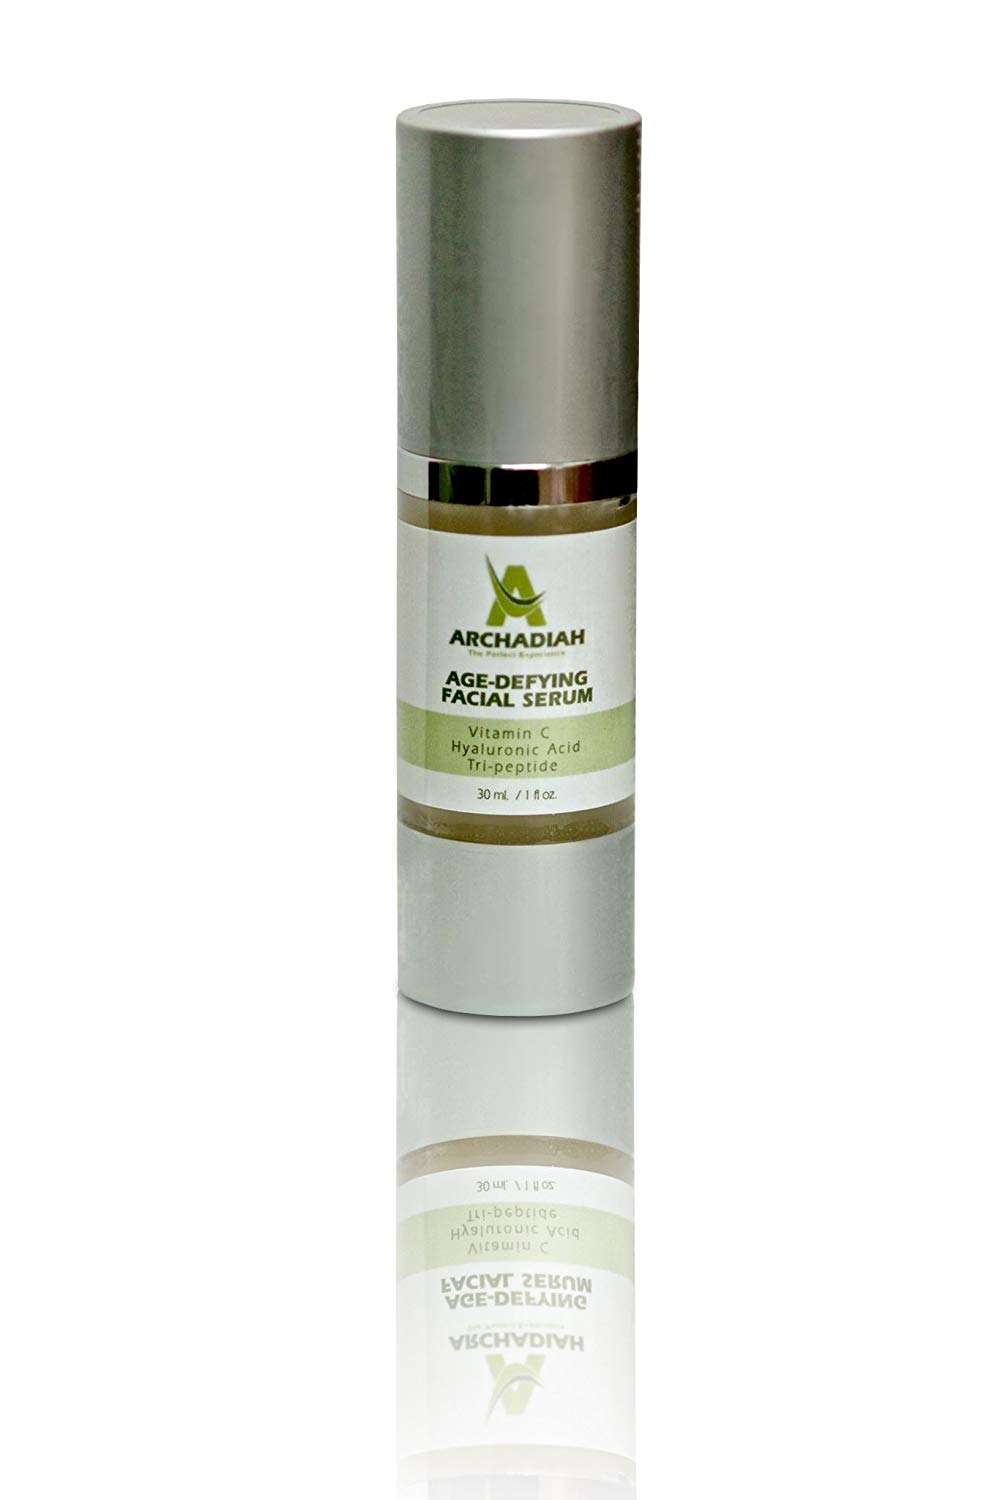 Organic Vitamin C Anti-Aging Topical Facial Serum with Hyaluronic Acid, 1 fl oz. by Archadiah | Tri-Peptide Anti-Aging Anti-Wrinkle Serum for Face | Brightens, Re-hydrates, Clears Acne and Evens Tone